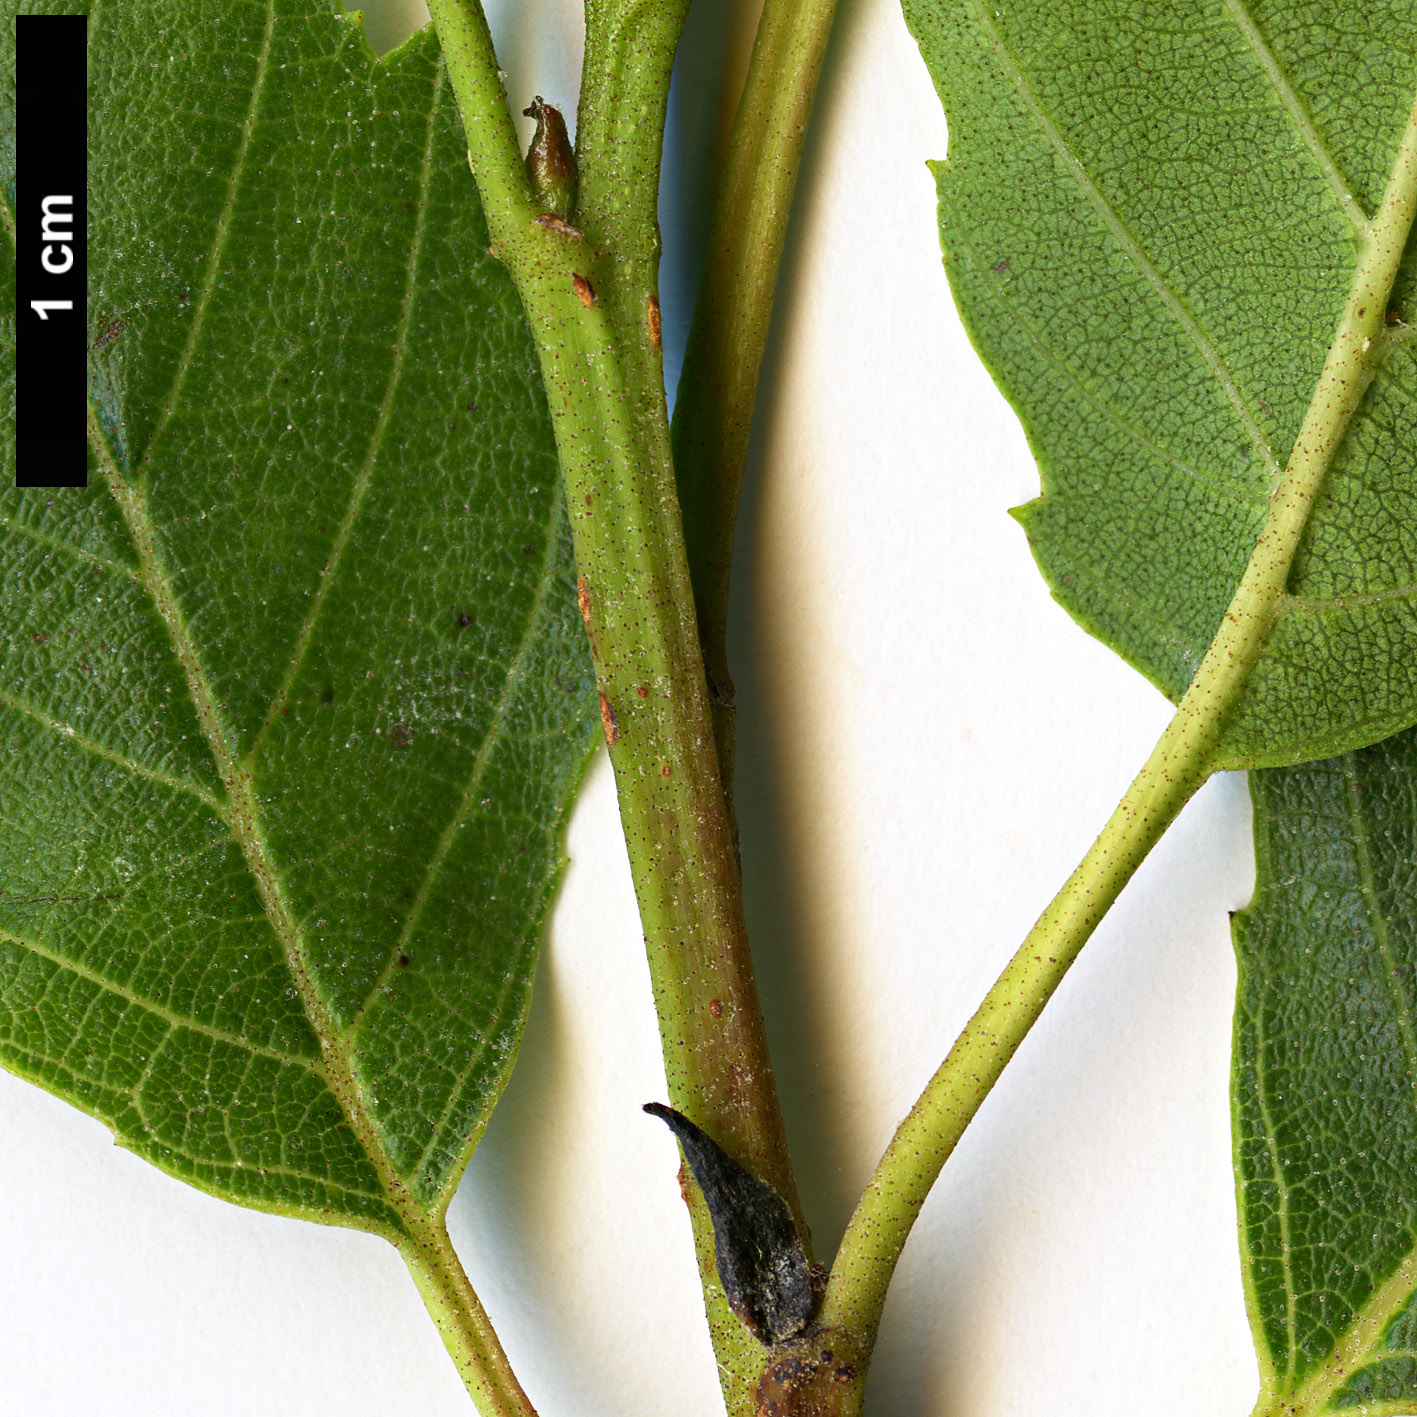 High resolution image: Family: Betulaceae - Genus: Alnus - Taxon: jorullensis